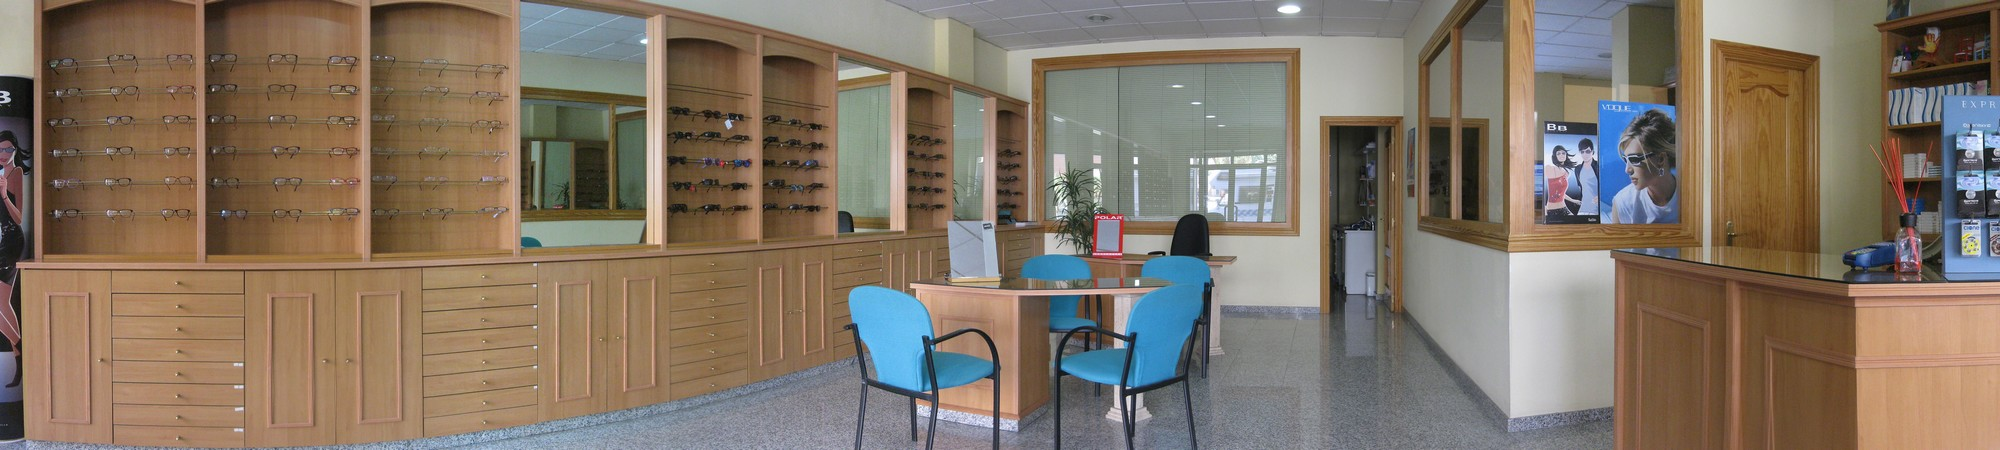 centro optico soto en motril, opticas en motril, opticas motril, opticos en motril, opticos motril,